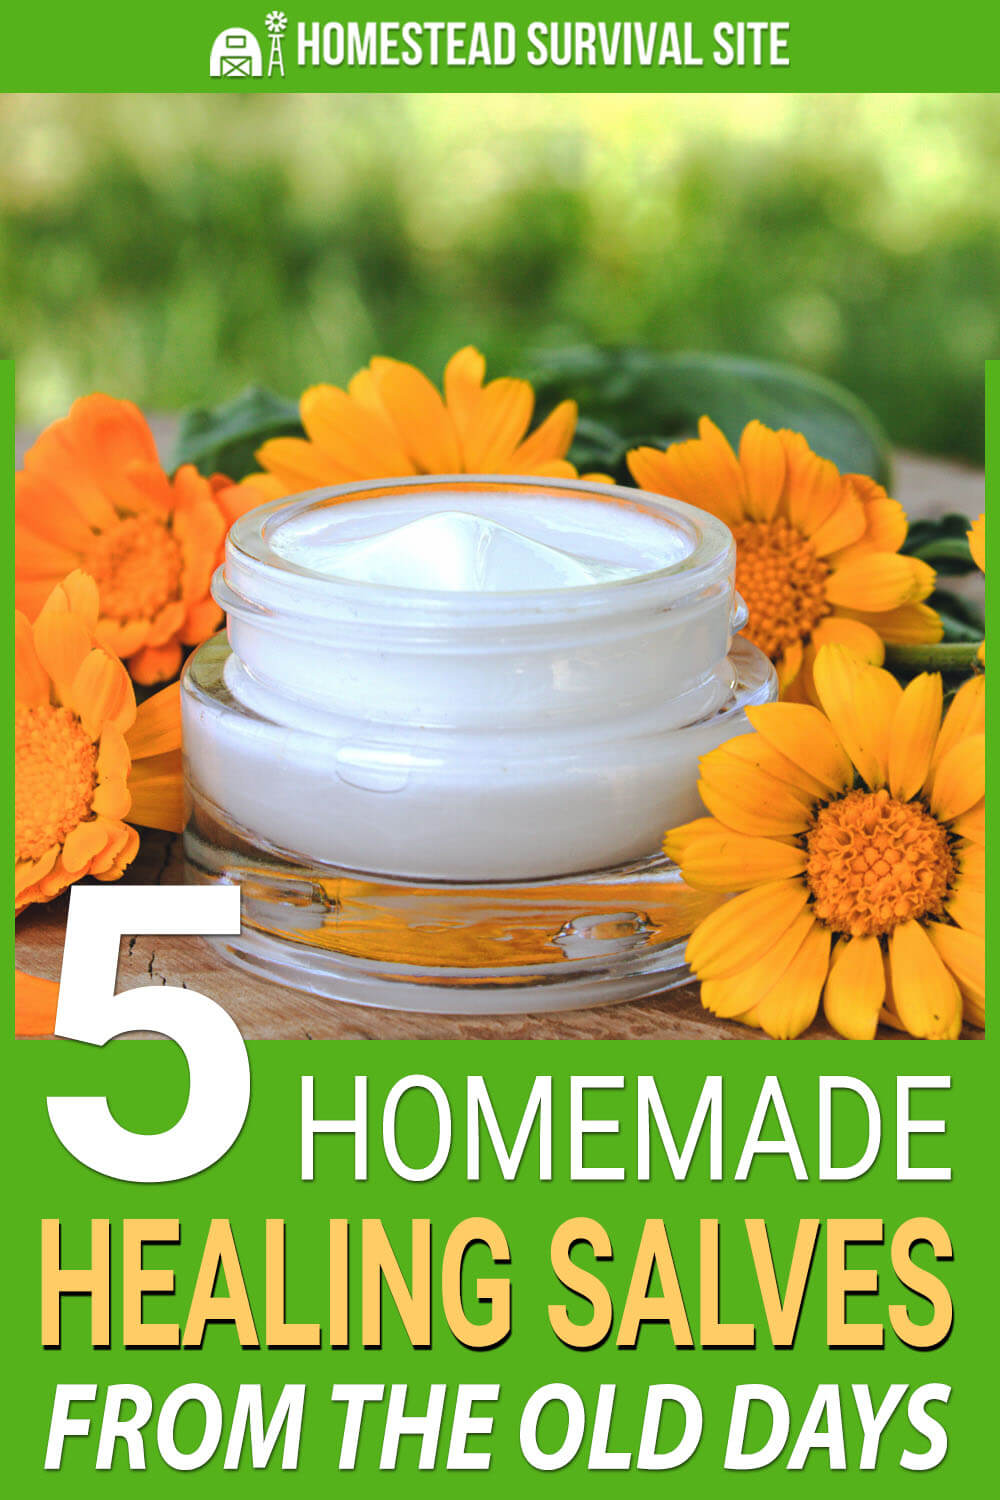 5 Homemade Healing Salves From The Old Days